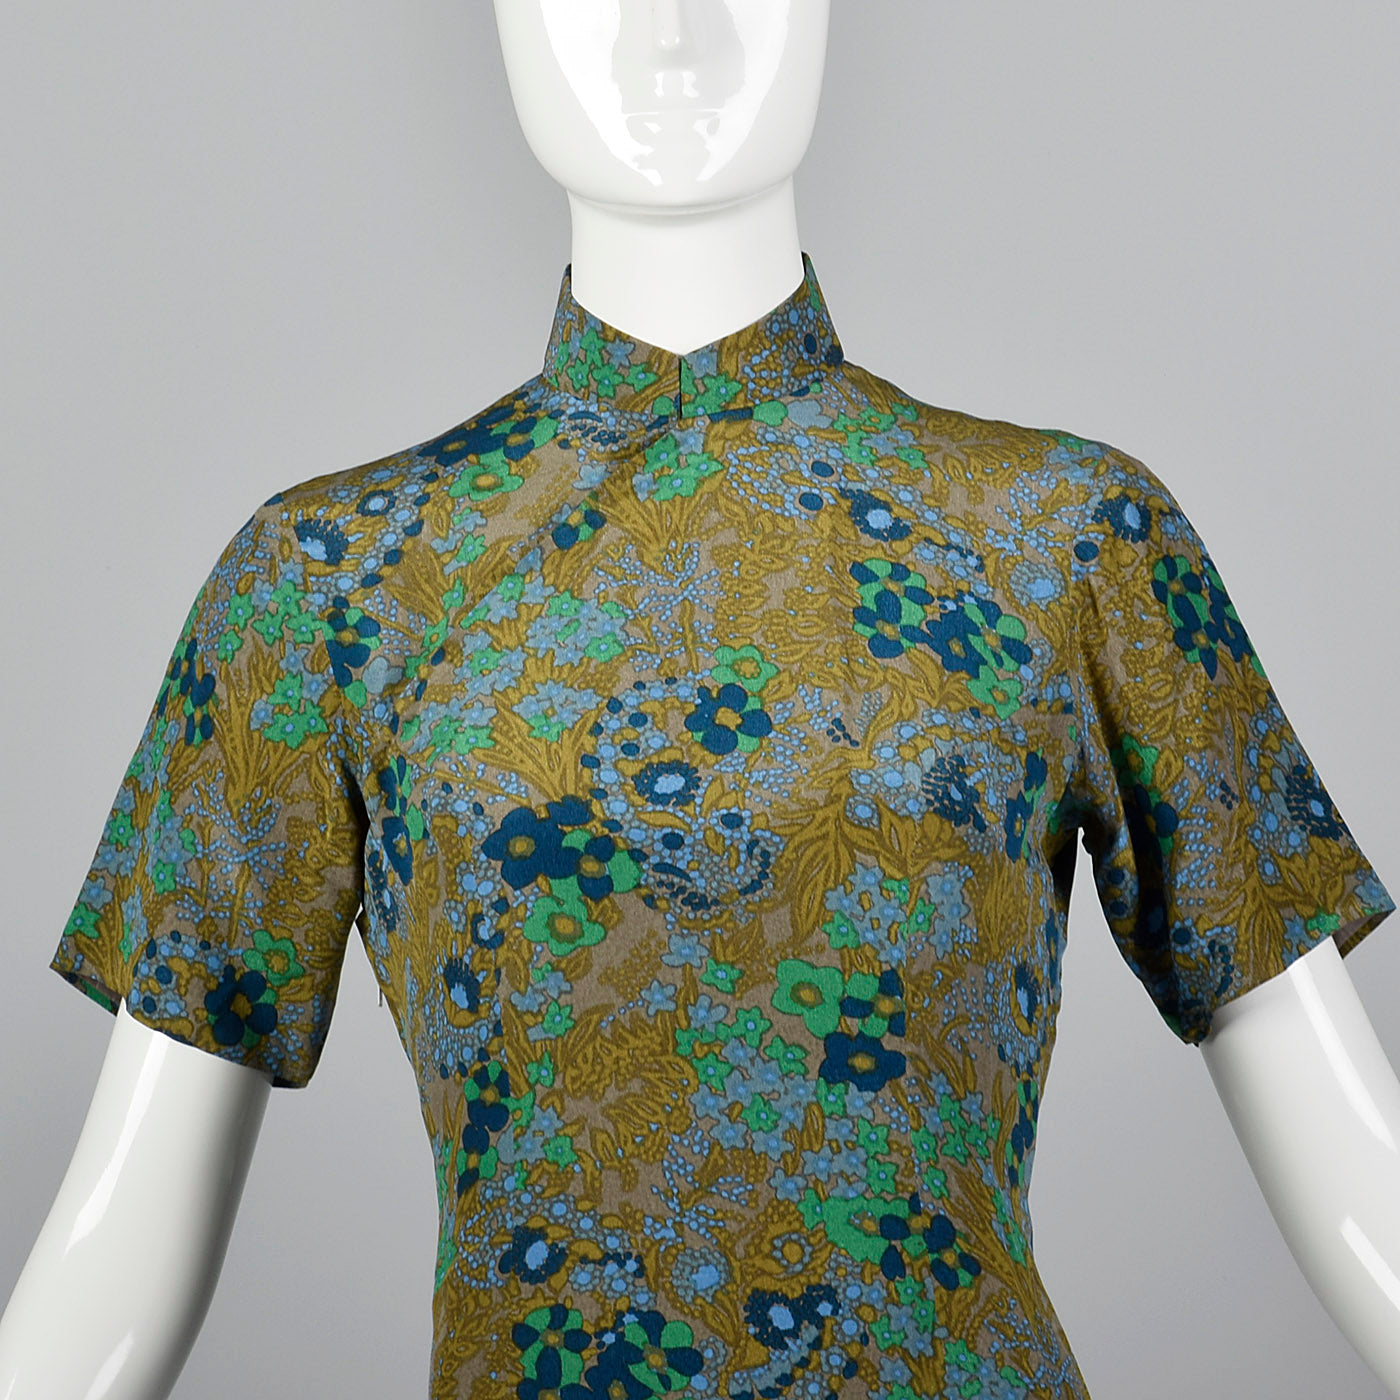 1960s Green and Blue Floral Dress with Mandarin Collar